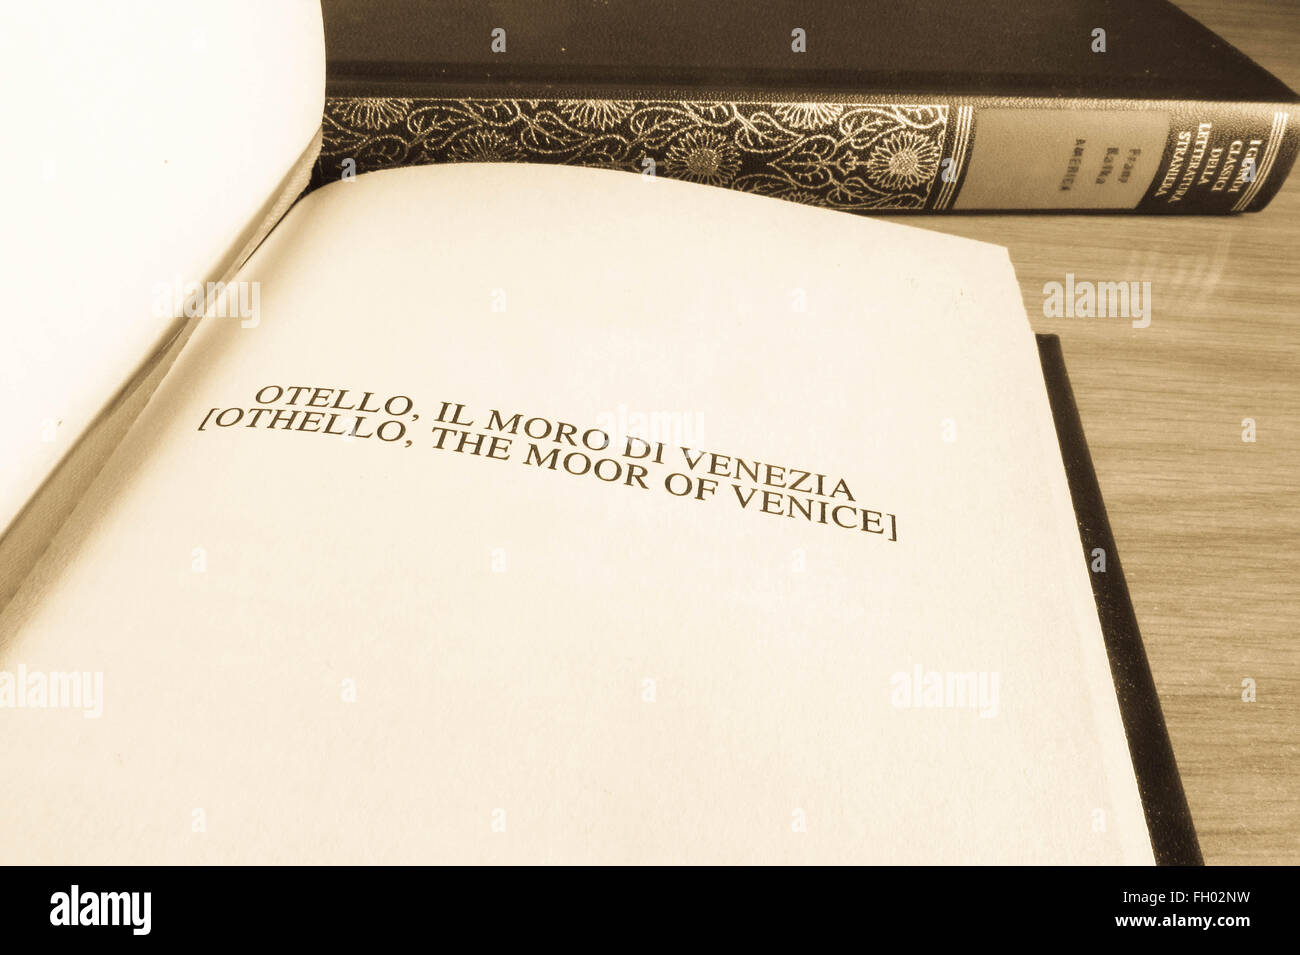 othello the moor of venice by william shakespeare